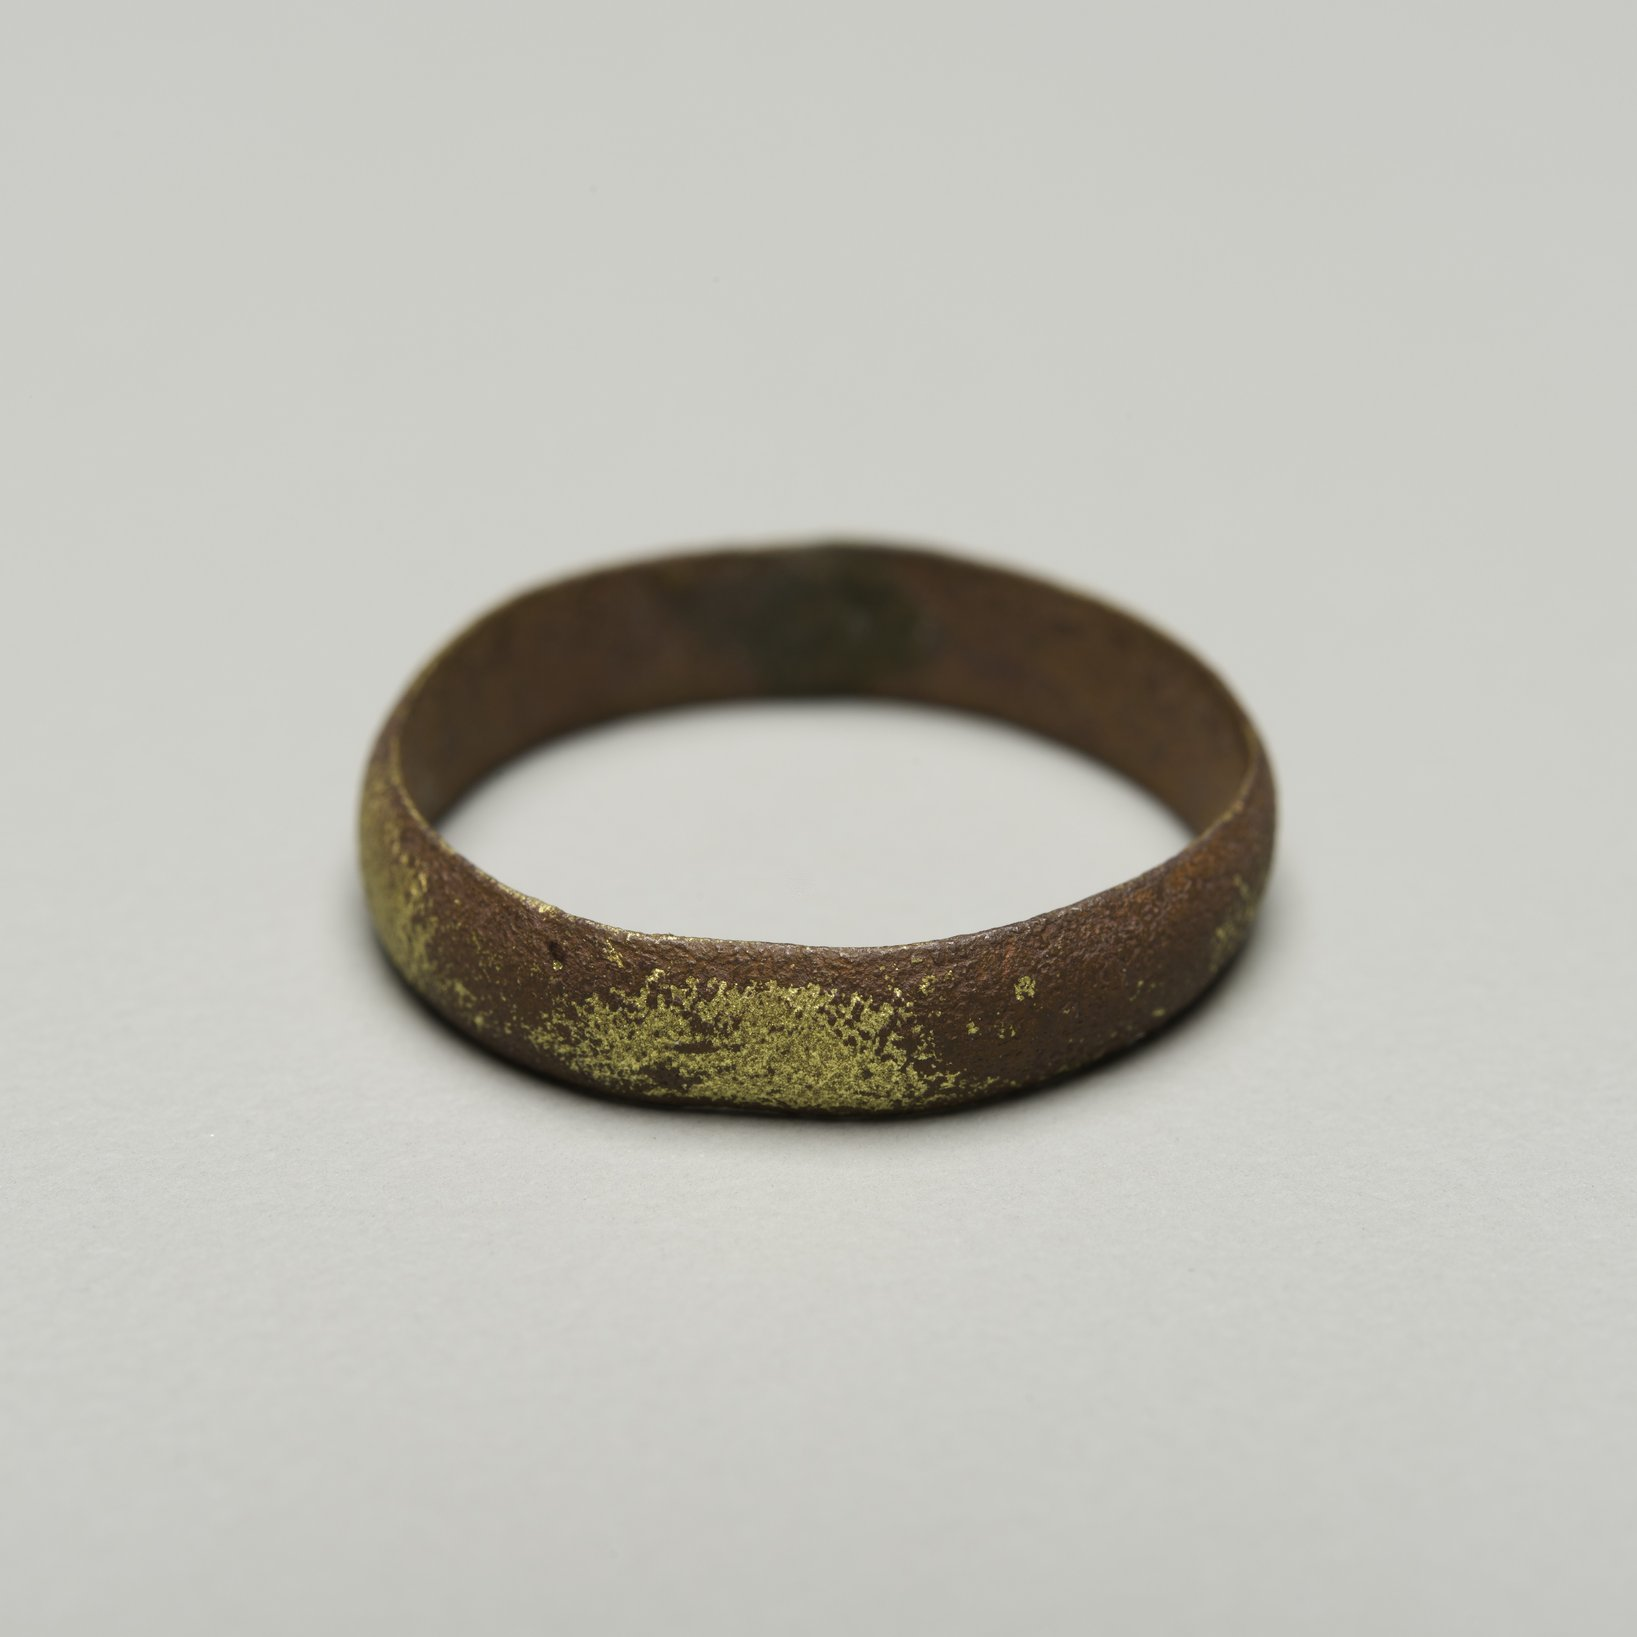 Brass Ring from the Canville Trading Post, 14NO396 - 1